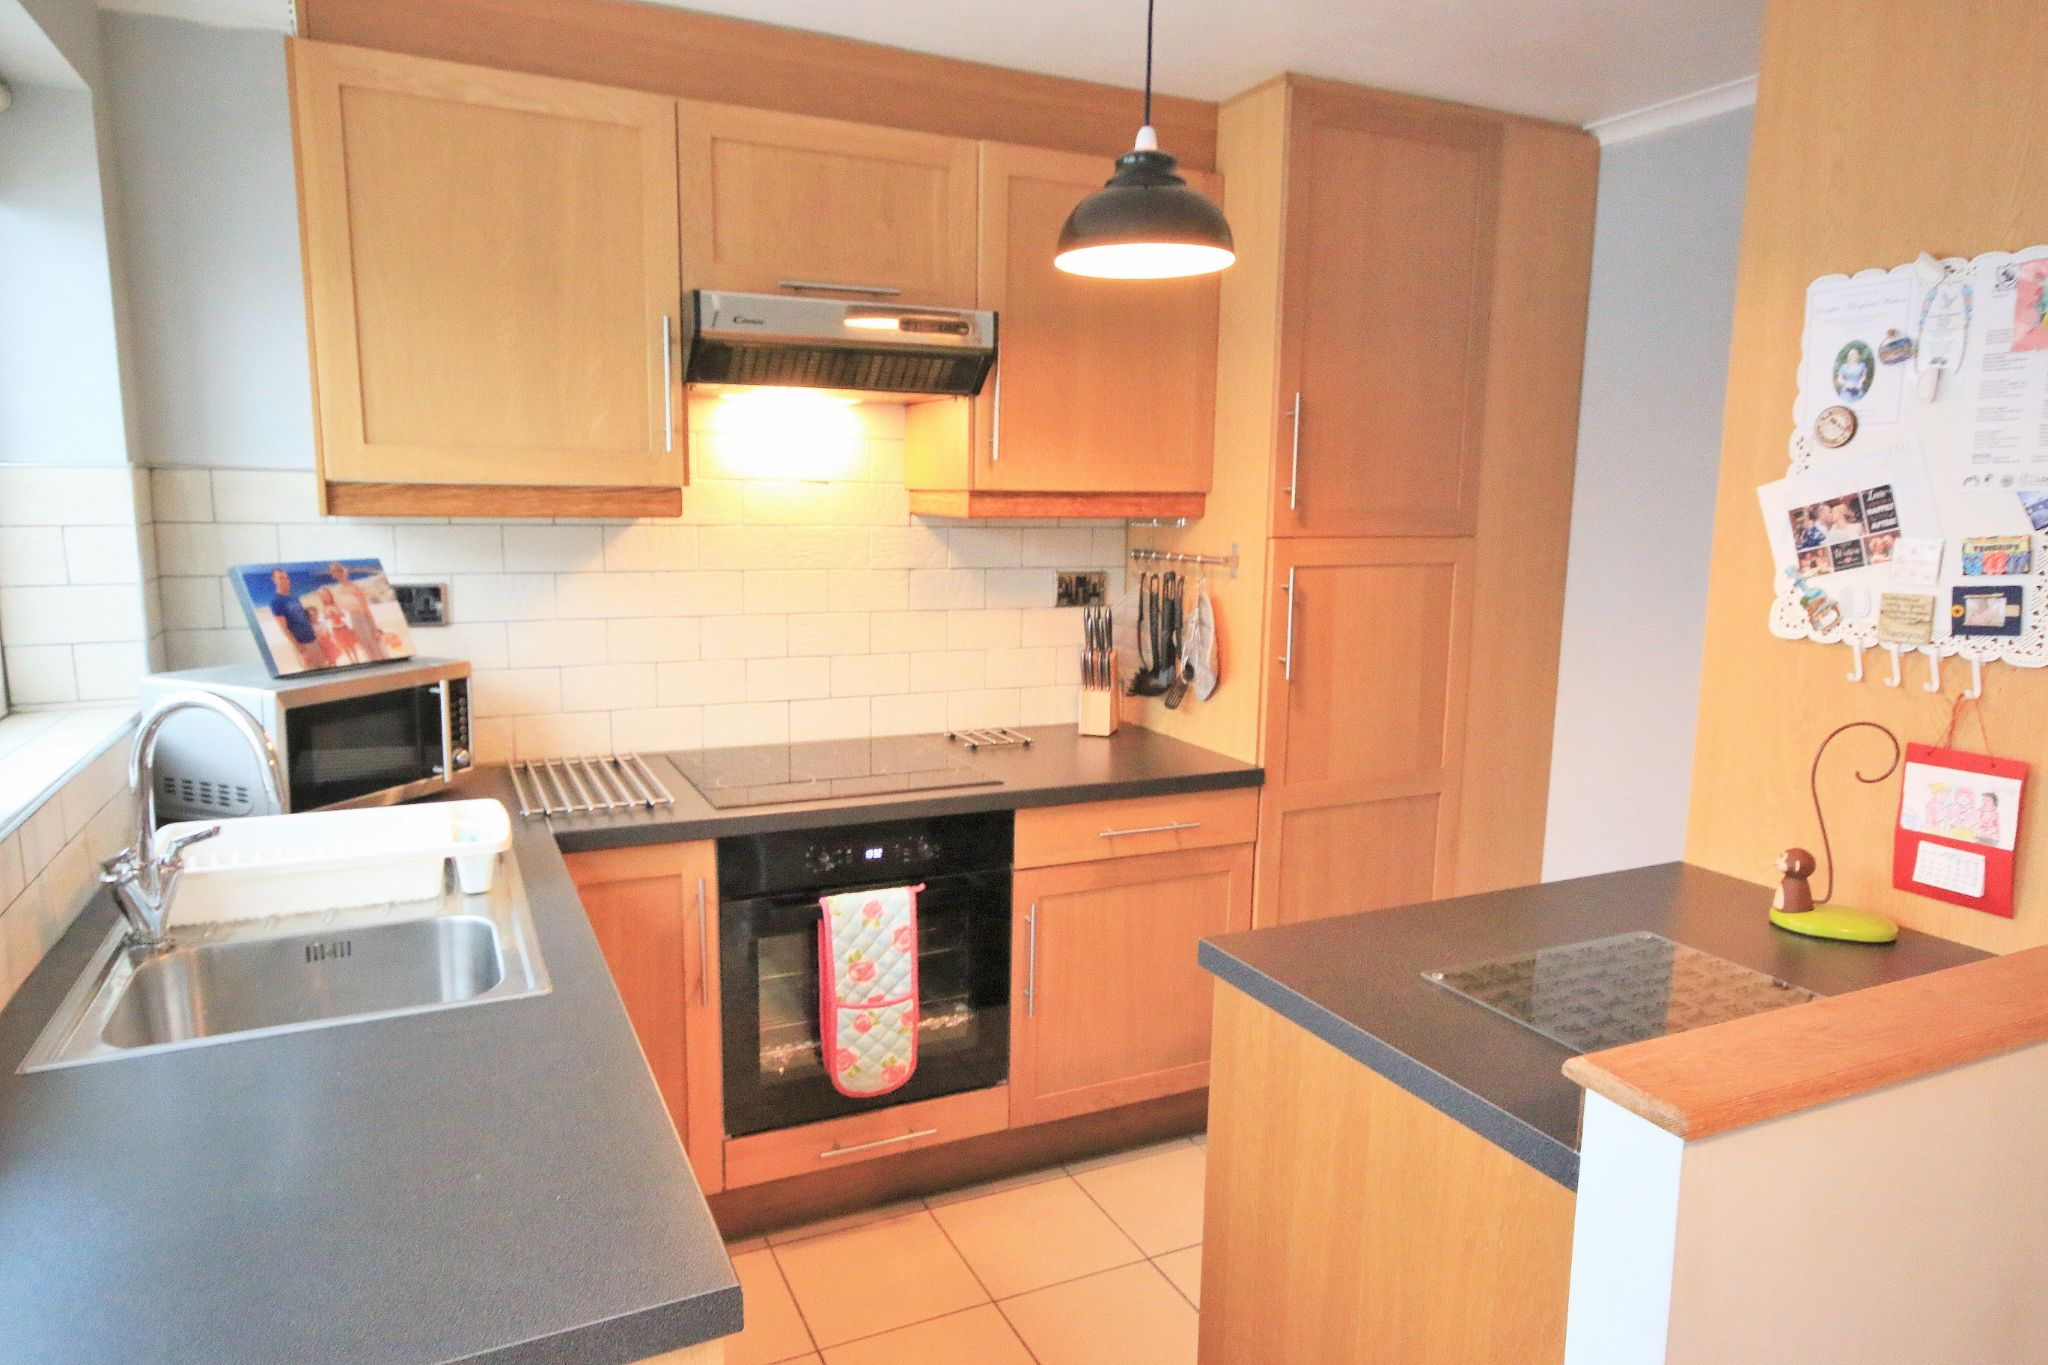 3 Bedroom Semi-detached House For Sale - Photograph 3